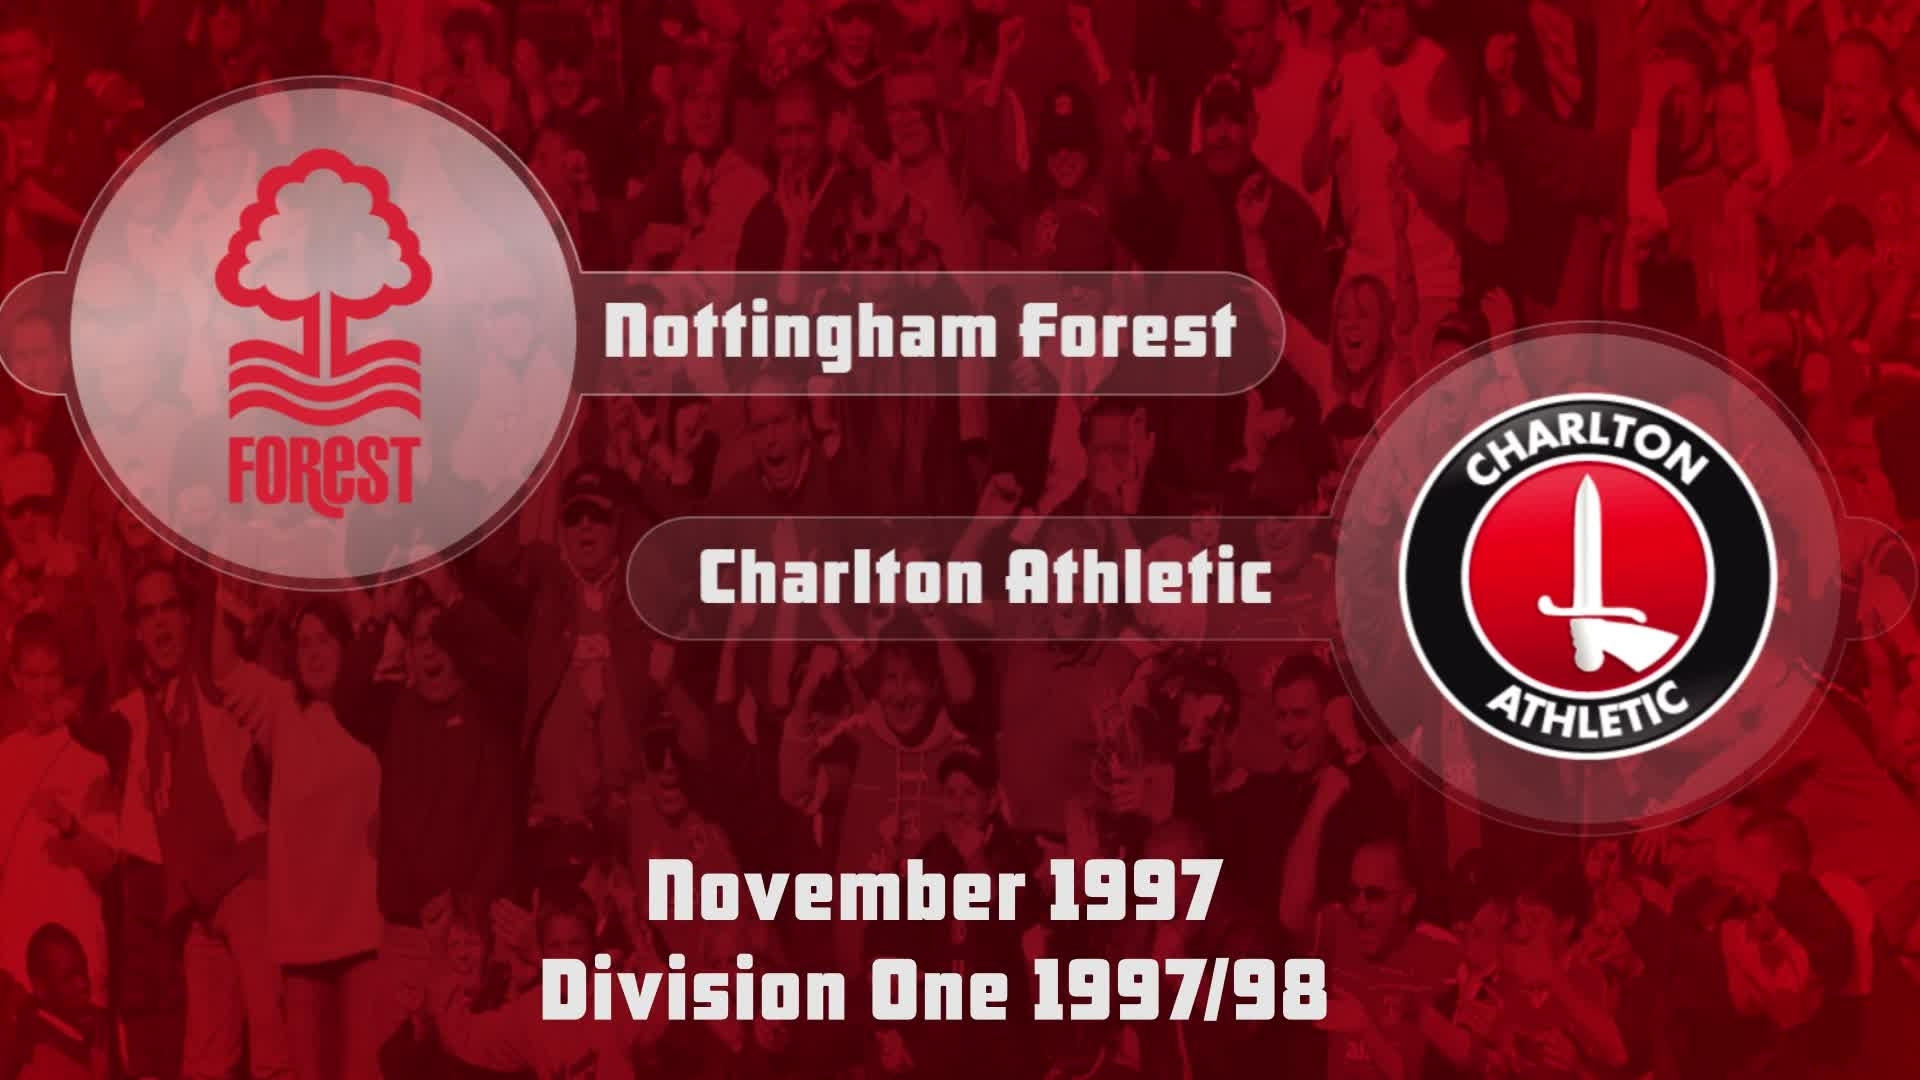 20 HIGHLIGHTS | Nottingham Forest 5 Charlton 2 (Nov 1997)